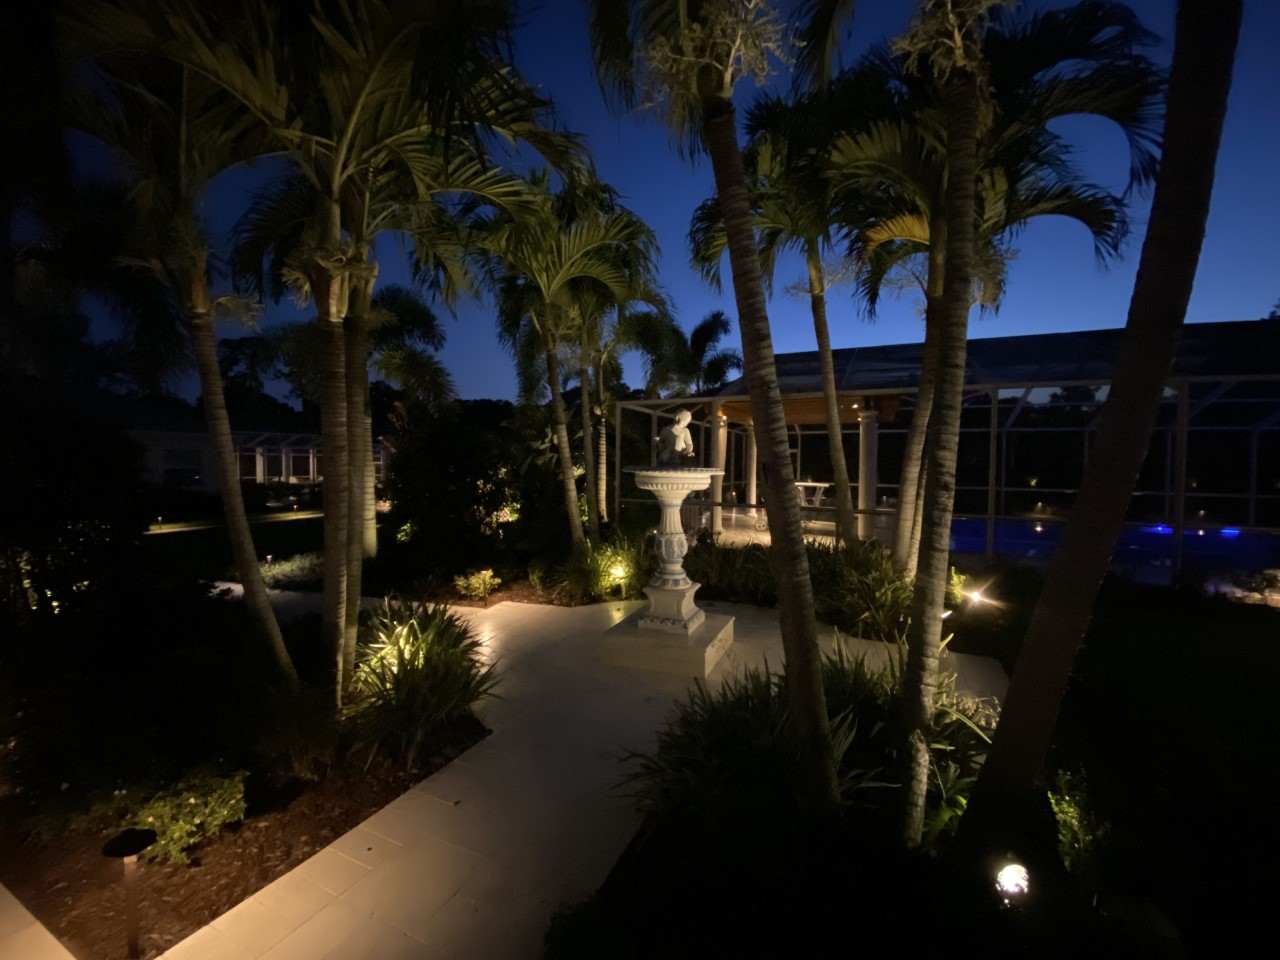 pathway lighting with palmtrees